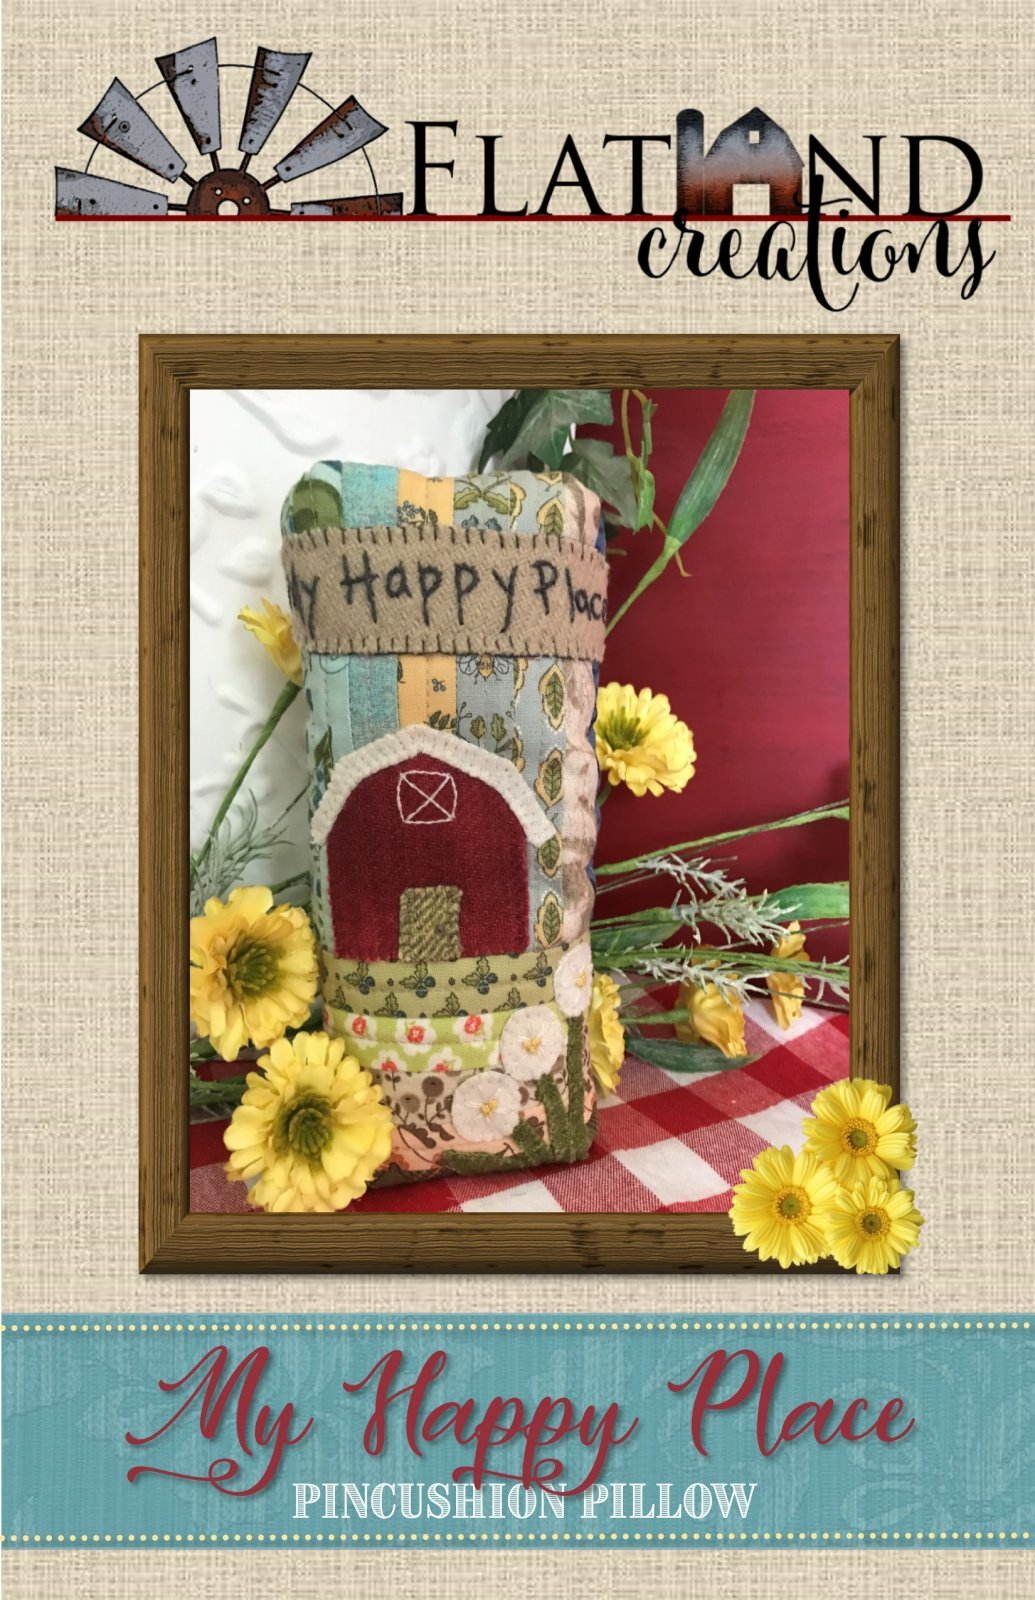 My Happy Place Pincushion Pattern by Flatland Creations